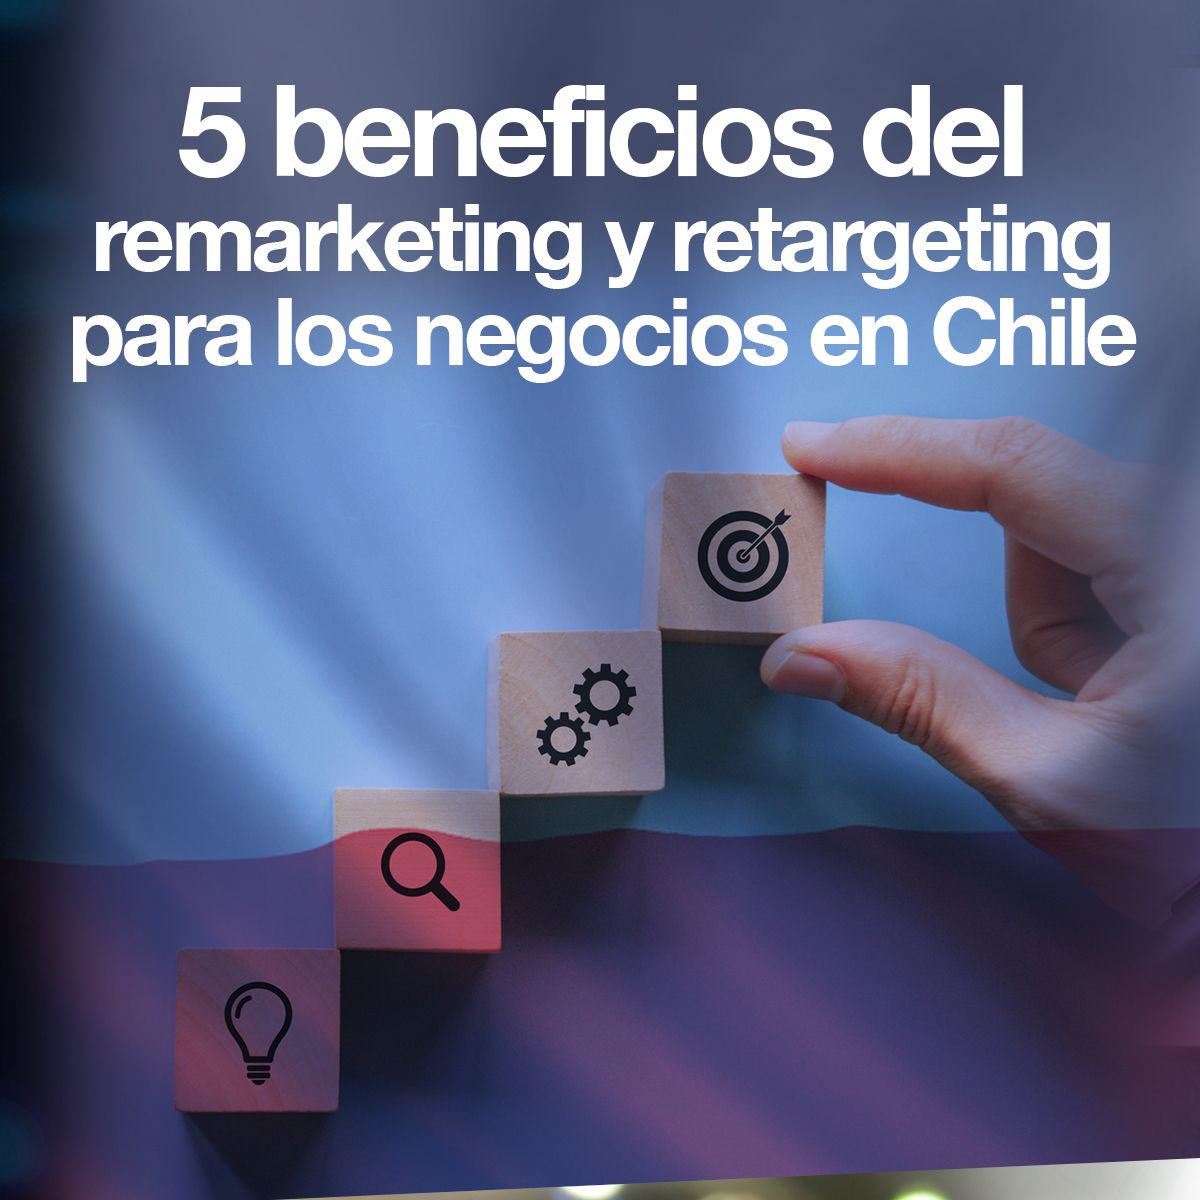 5 beneficios del remarketing y retargeting para los negocios en Chile